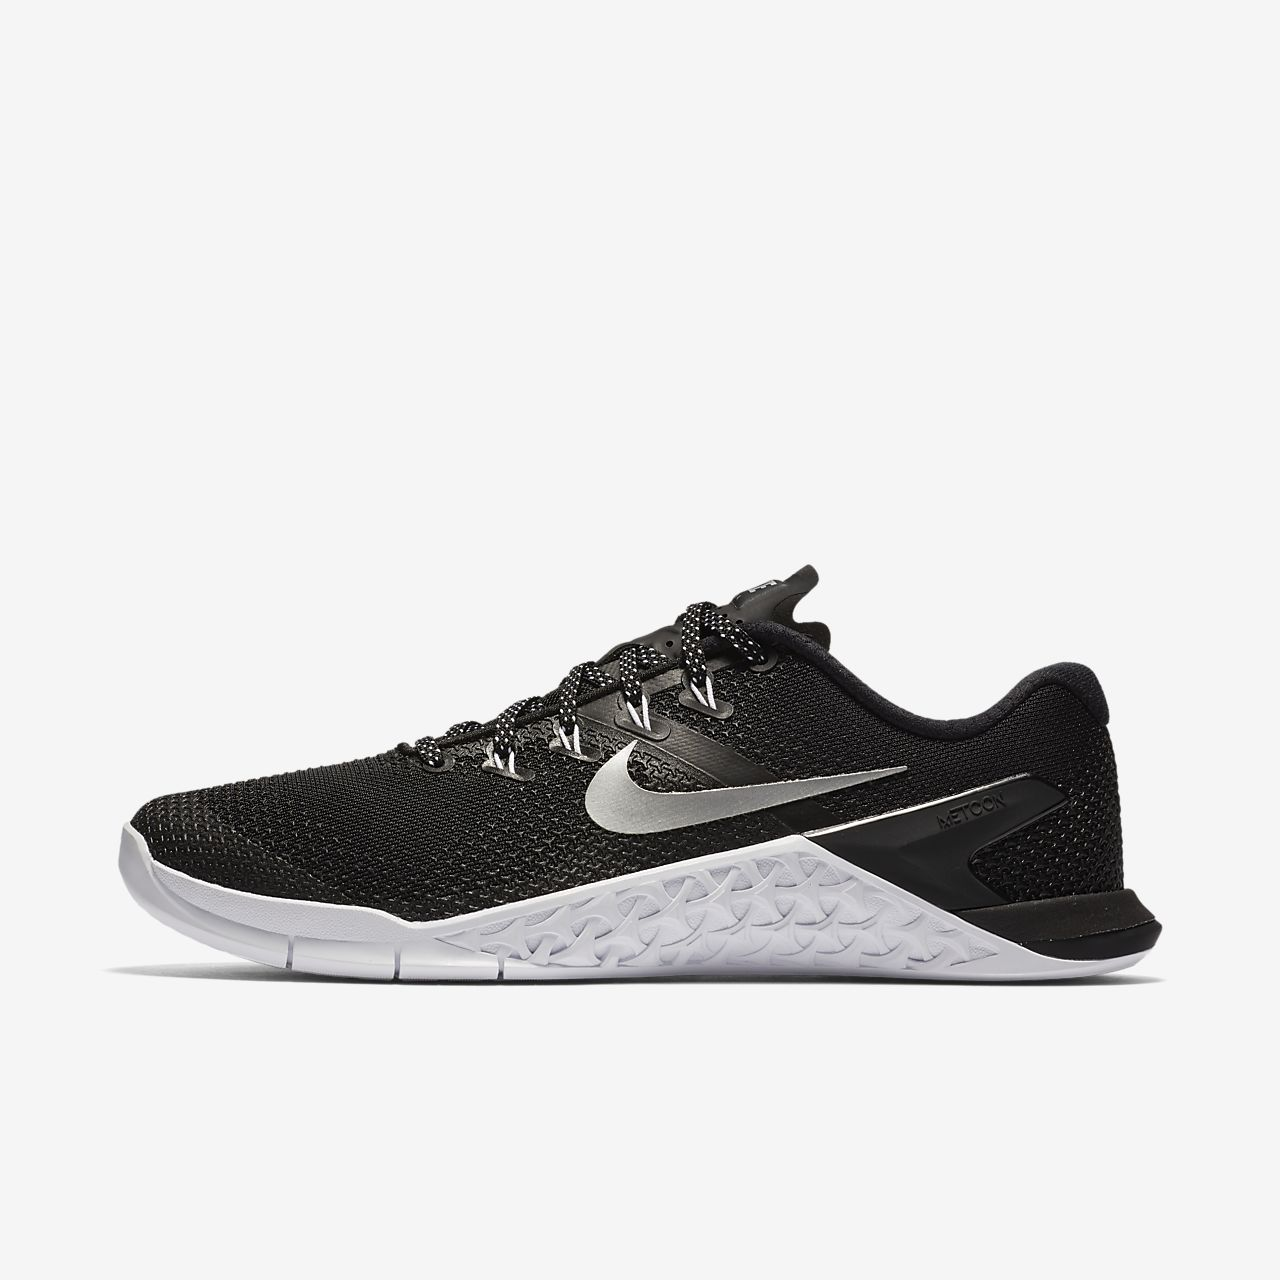 buy online e662a d82d3 Nike Metcon 4 Women s Cross Training, Weightlifting Shoe. Nike.com